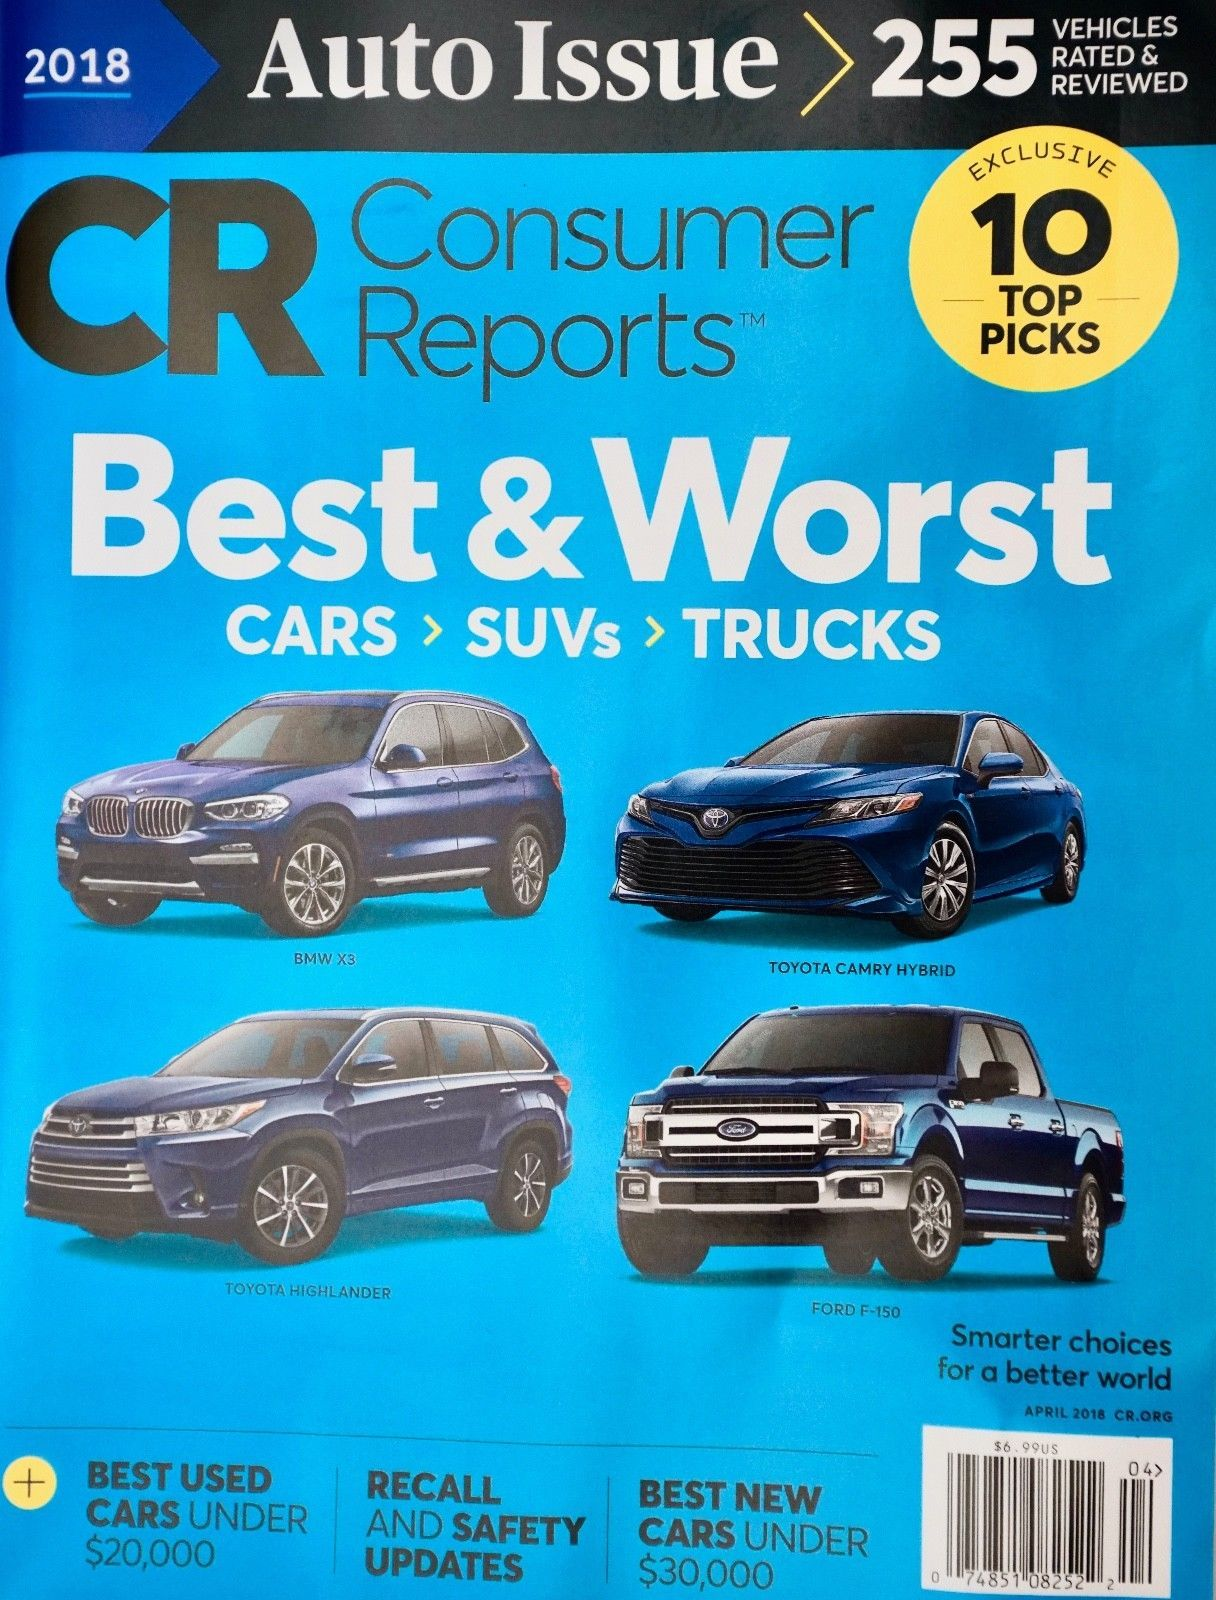 US-Deals Cars Consumer Reports Auto Issue Buying Guide Cars Trucks SUVs  April 2018, 255 Models: $9.98 End Date: Wednesday…%#USDeals%